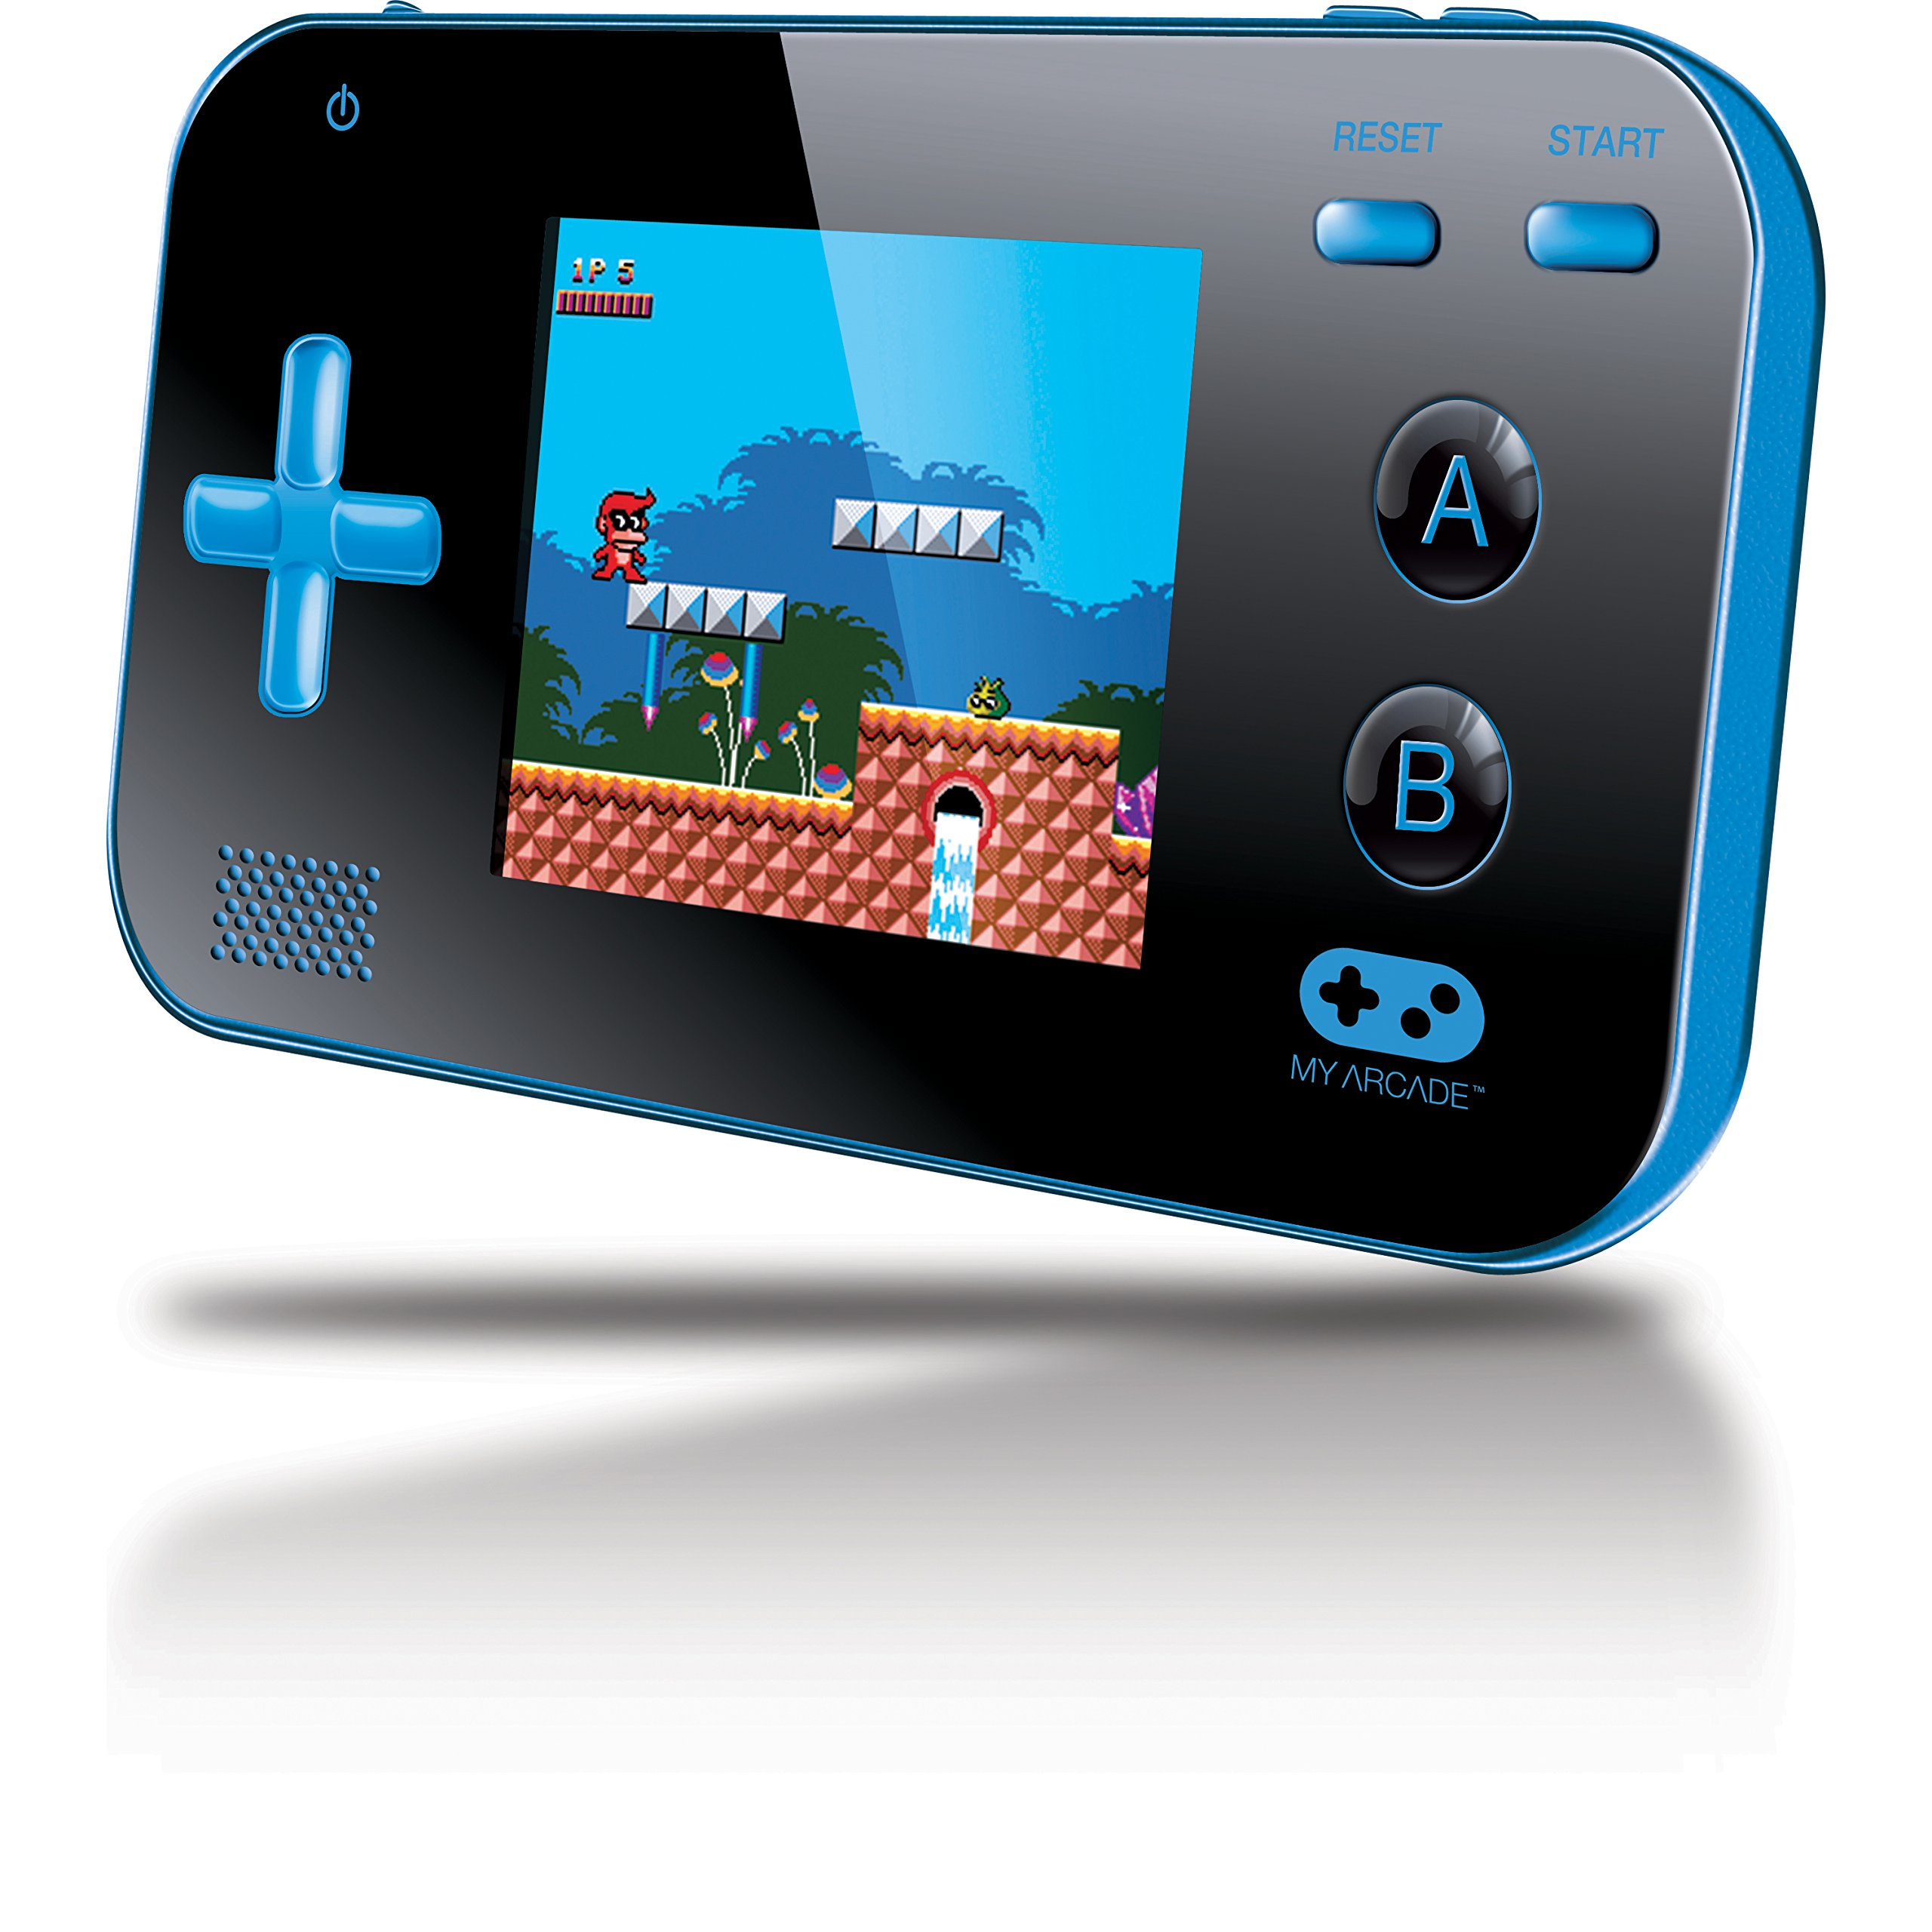 My Arcade Gamer V Portable Gaming System - 220 Built-in Retro Style Games and 2.4'' LCD Screen - Blue/Black